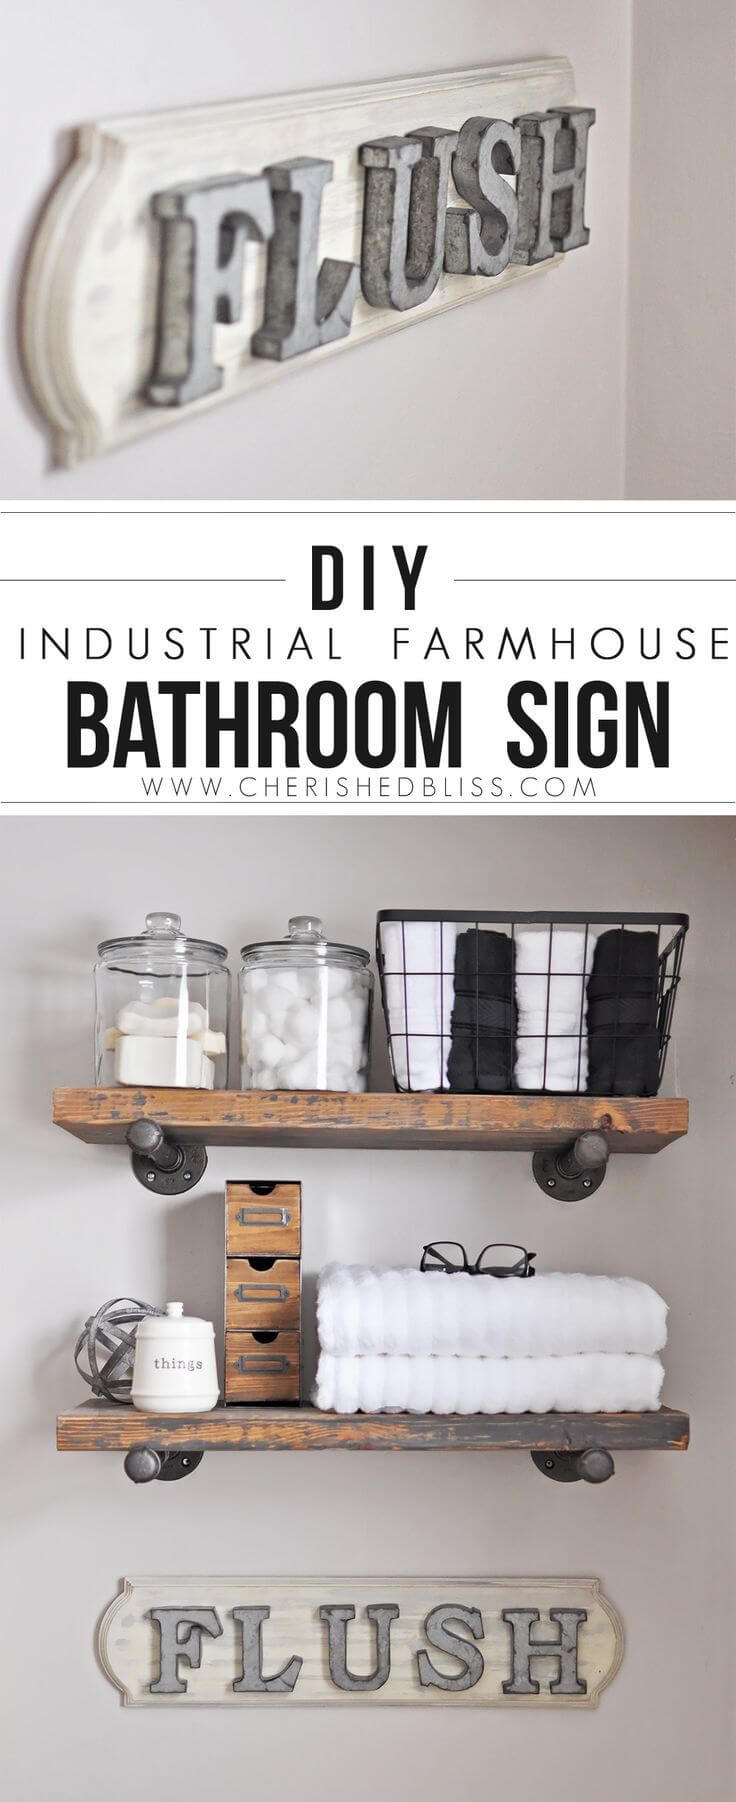 "DIY Farmhouse Bathroom ""Flush"" Sign"